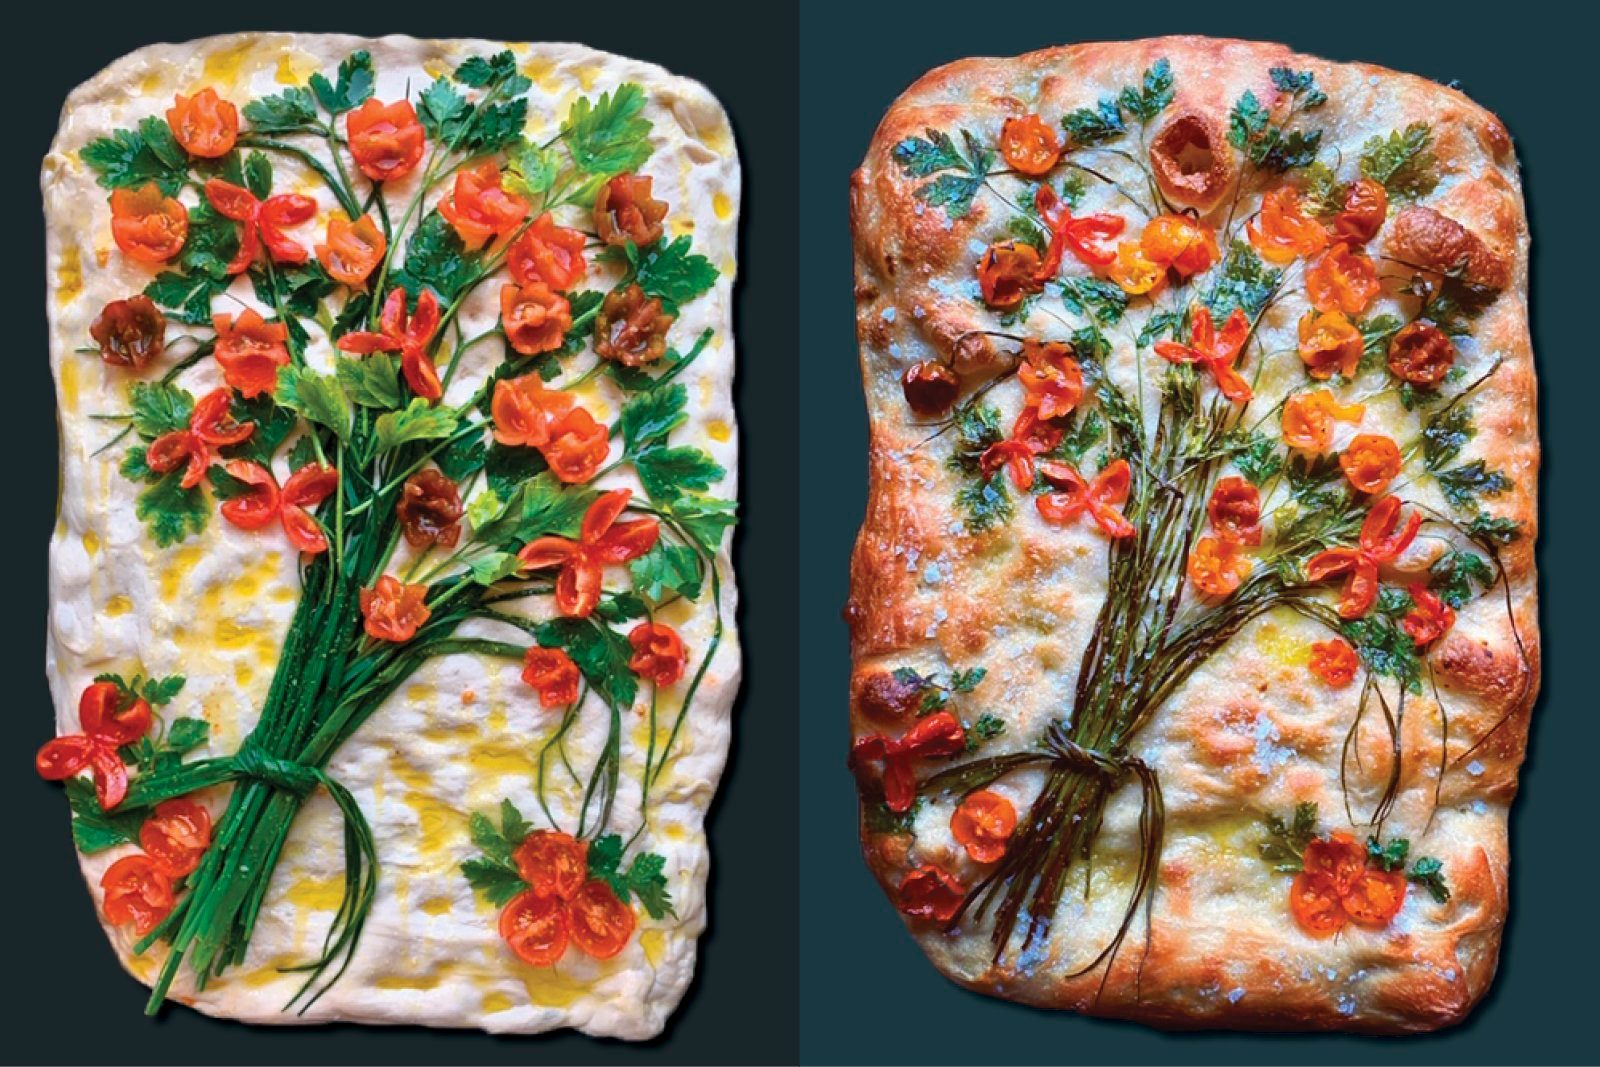 focaccia side by side